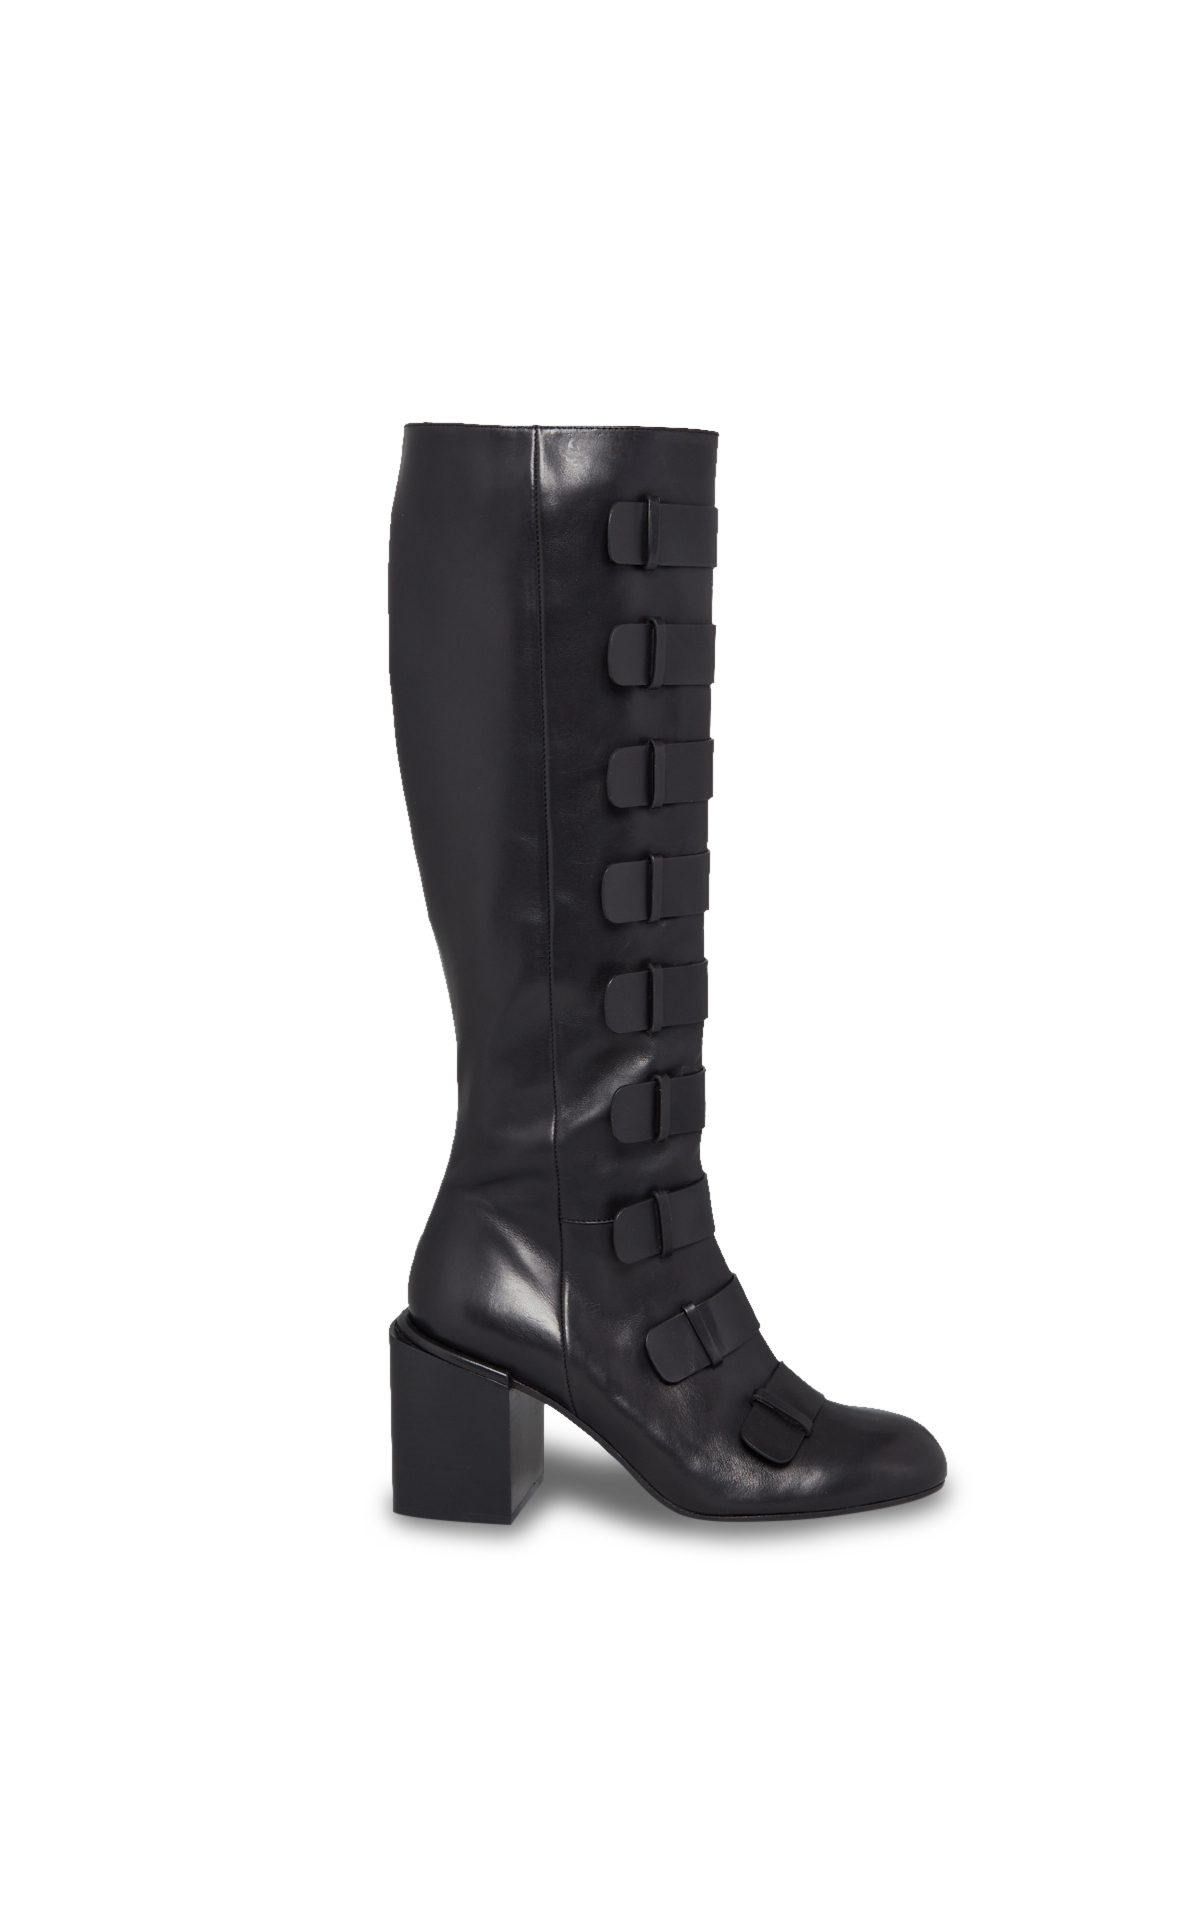 Clergerie Paris Black Xanina boots*